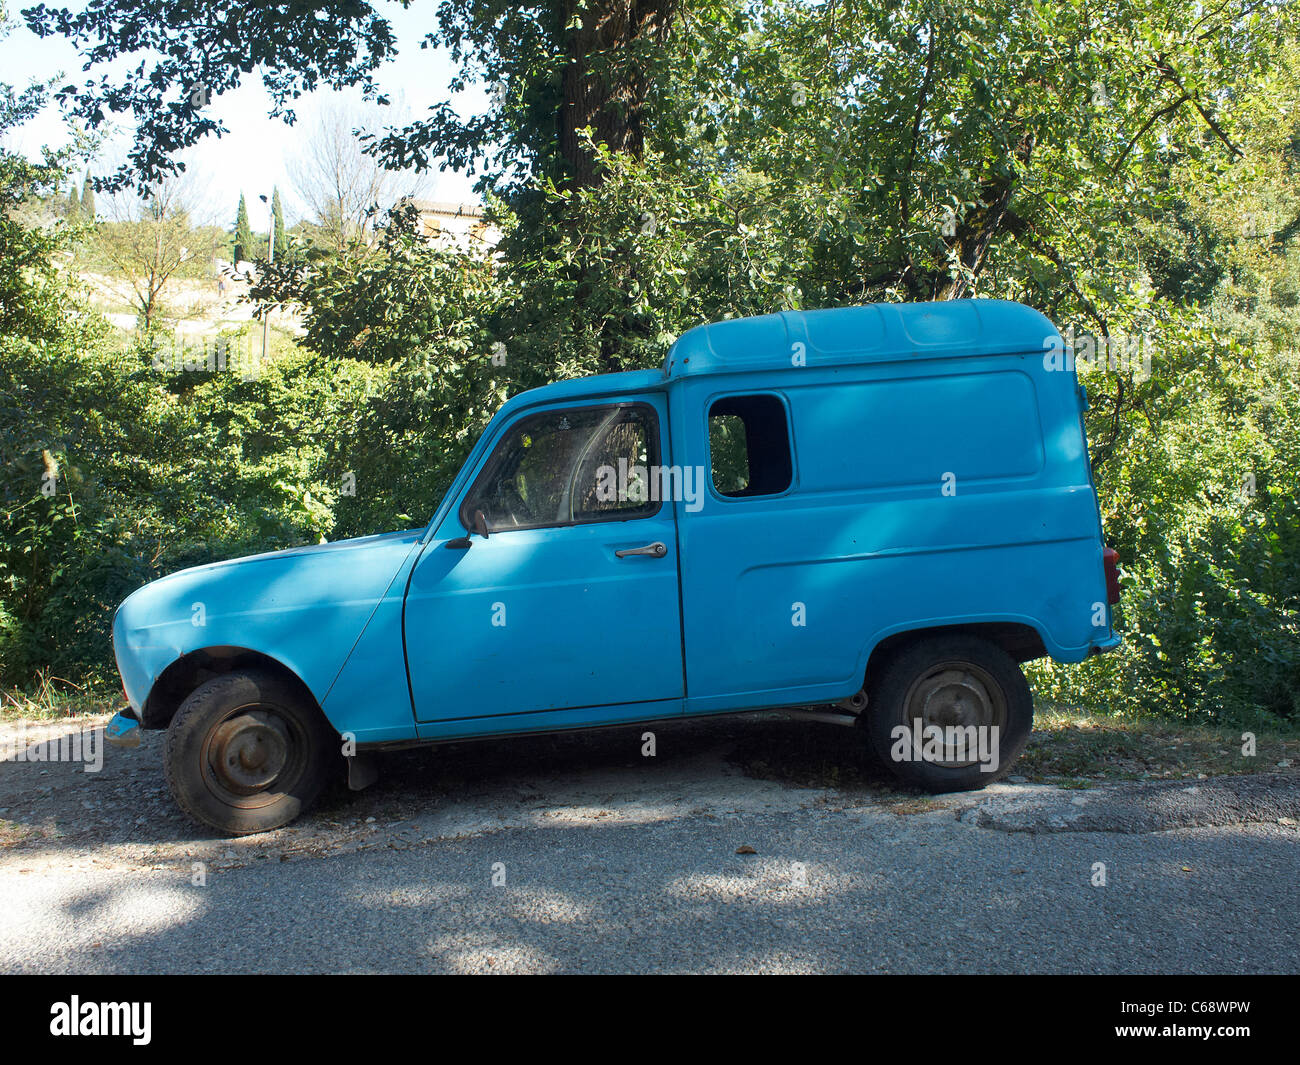 old renault van stock photos old renault van stock images alamy. Black Bedroom Furniture Sets. Home Design Ideas